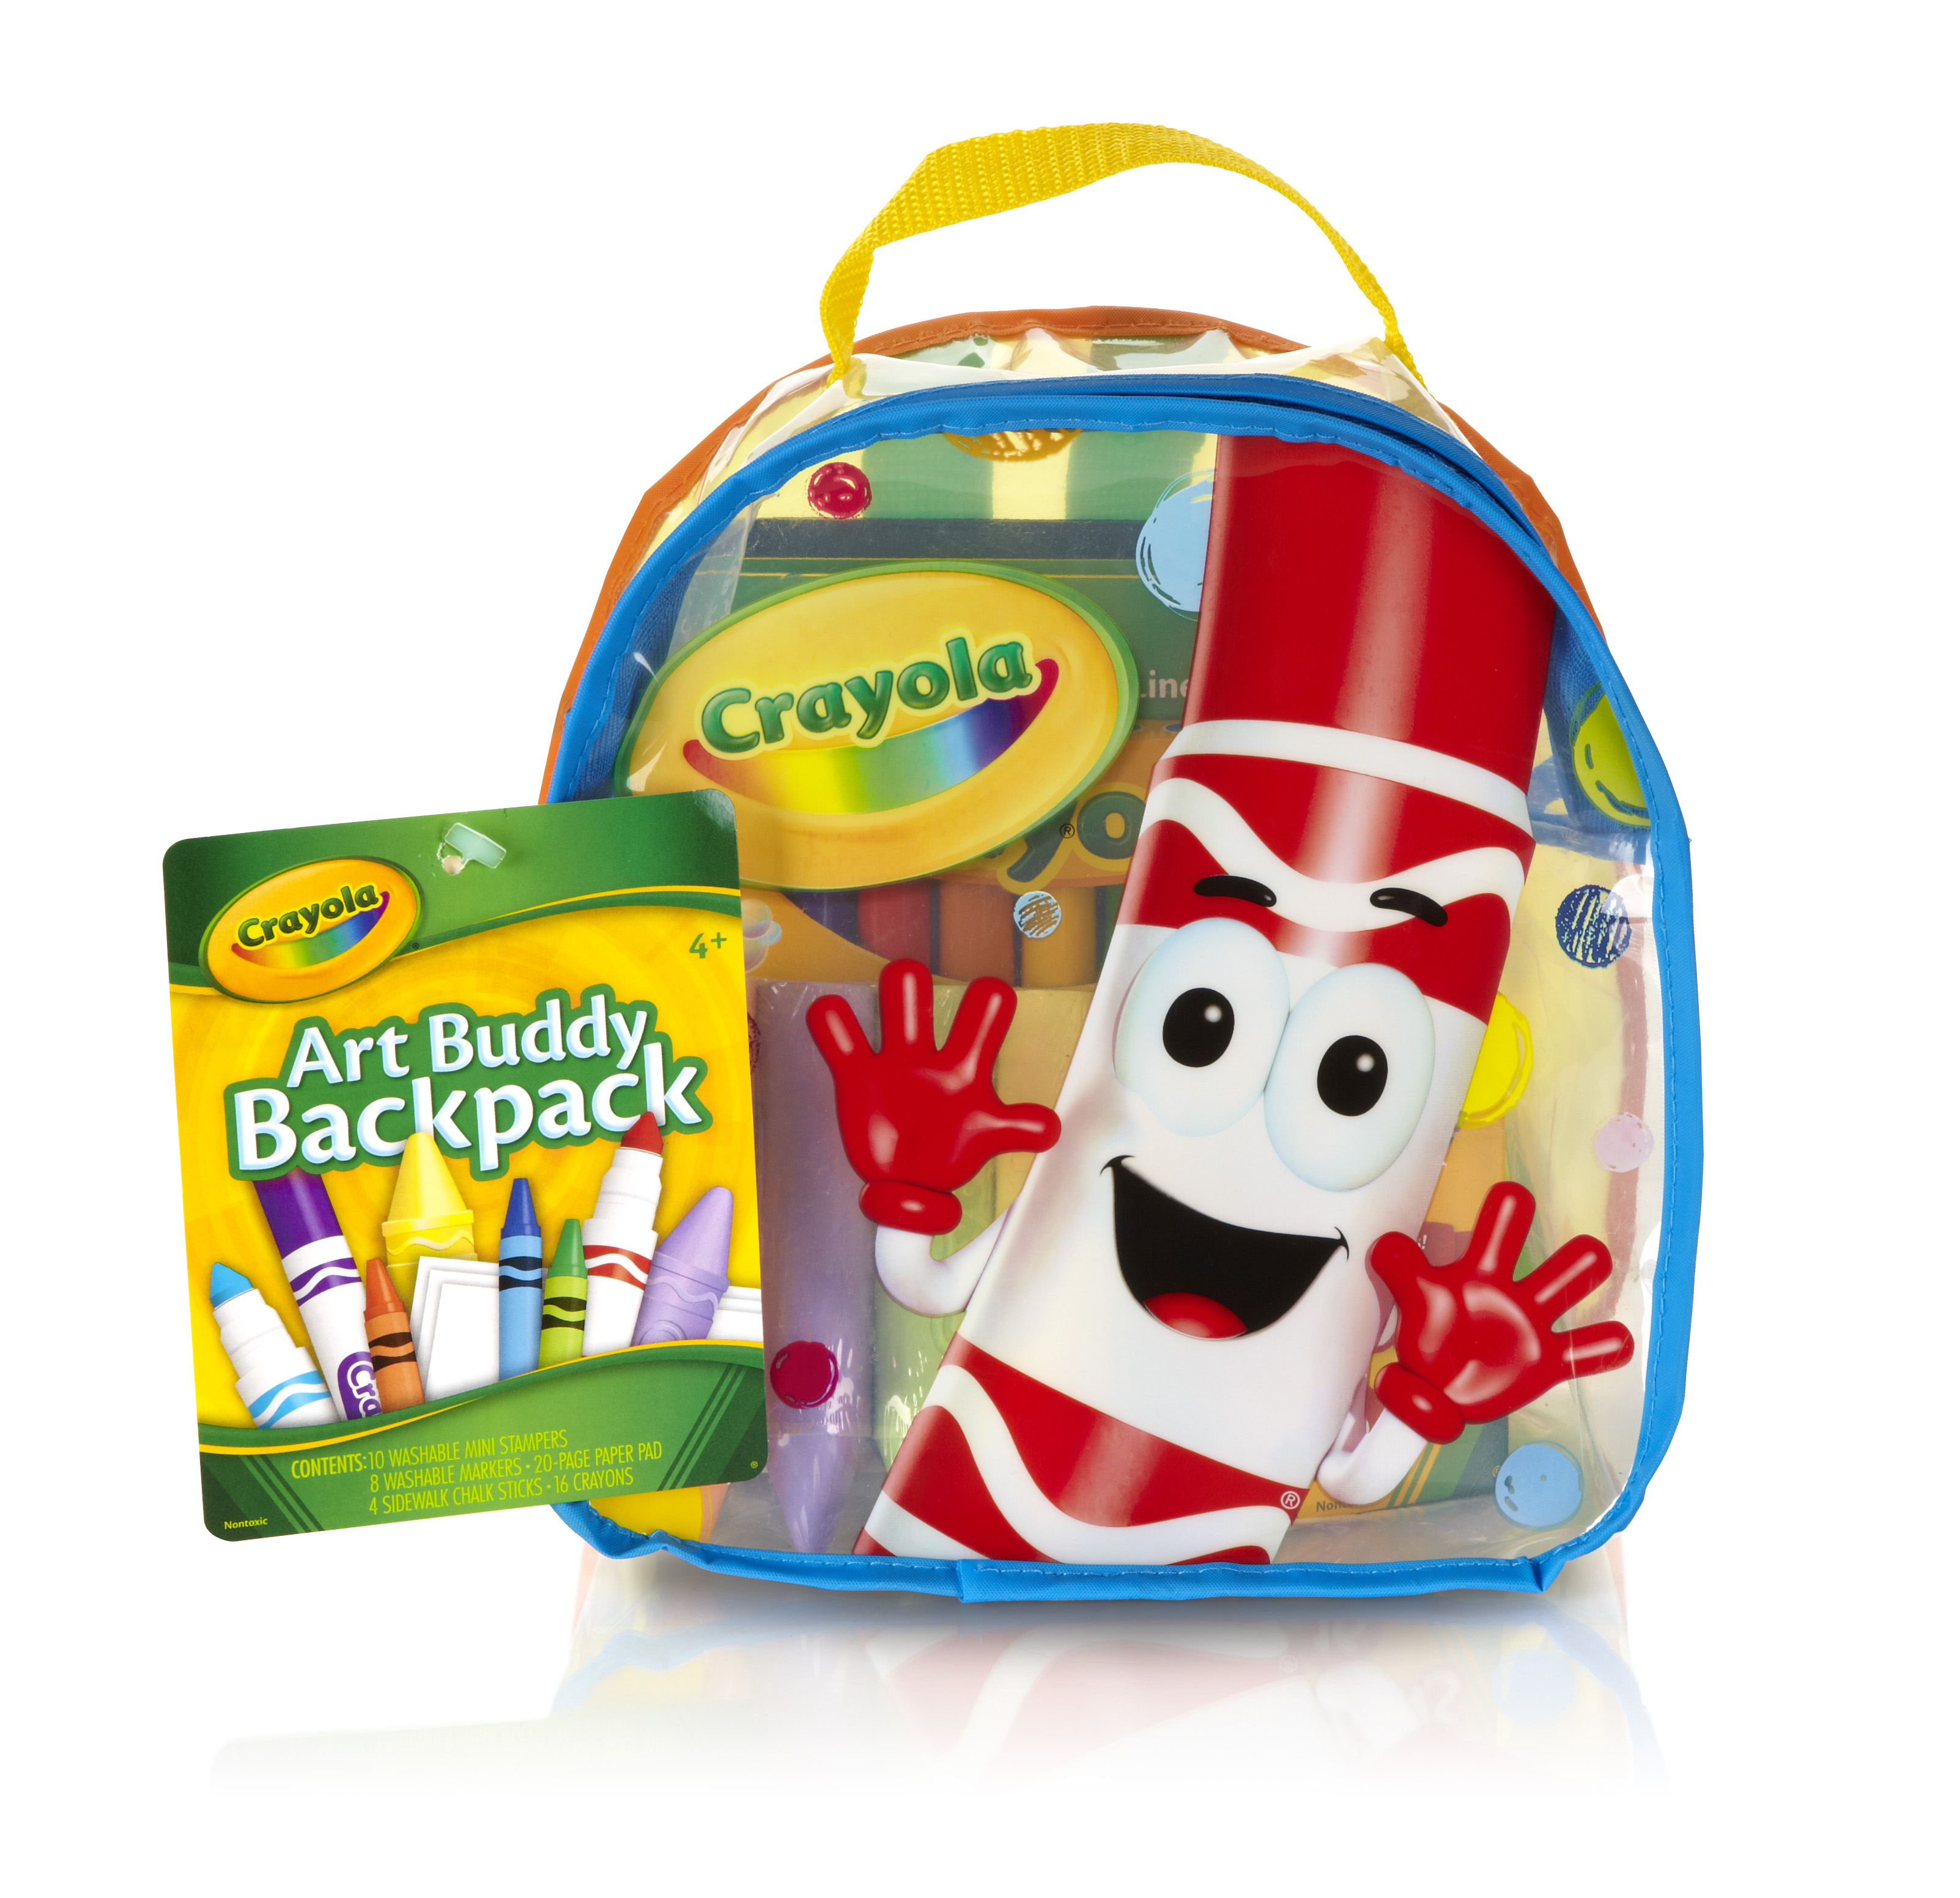 Crayola Art Buddy Clear Backpack includes Crayons, Markers, and Chalk